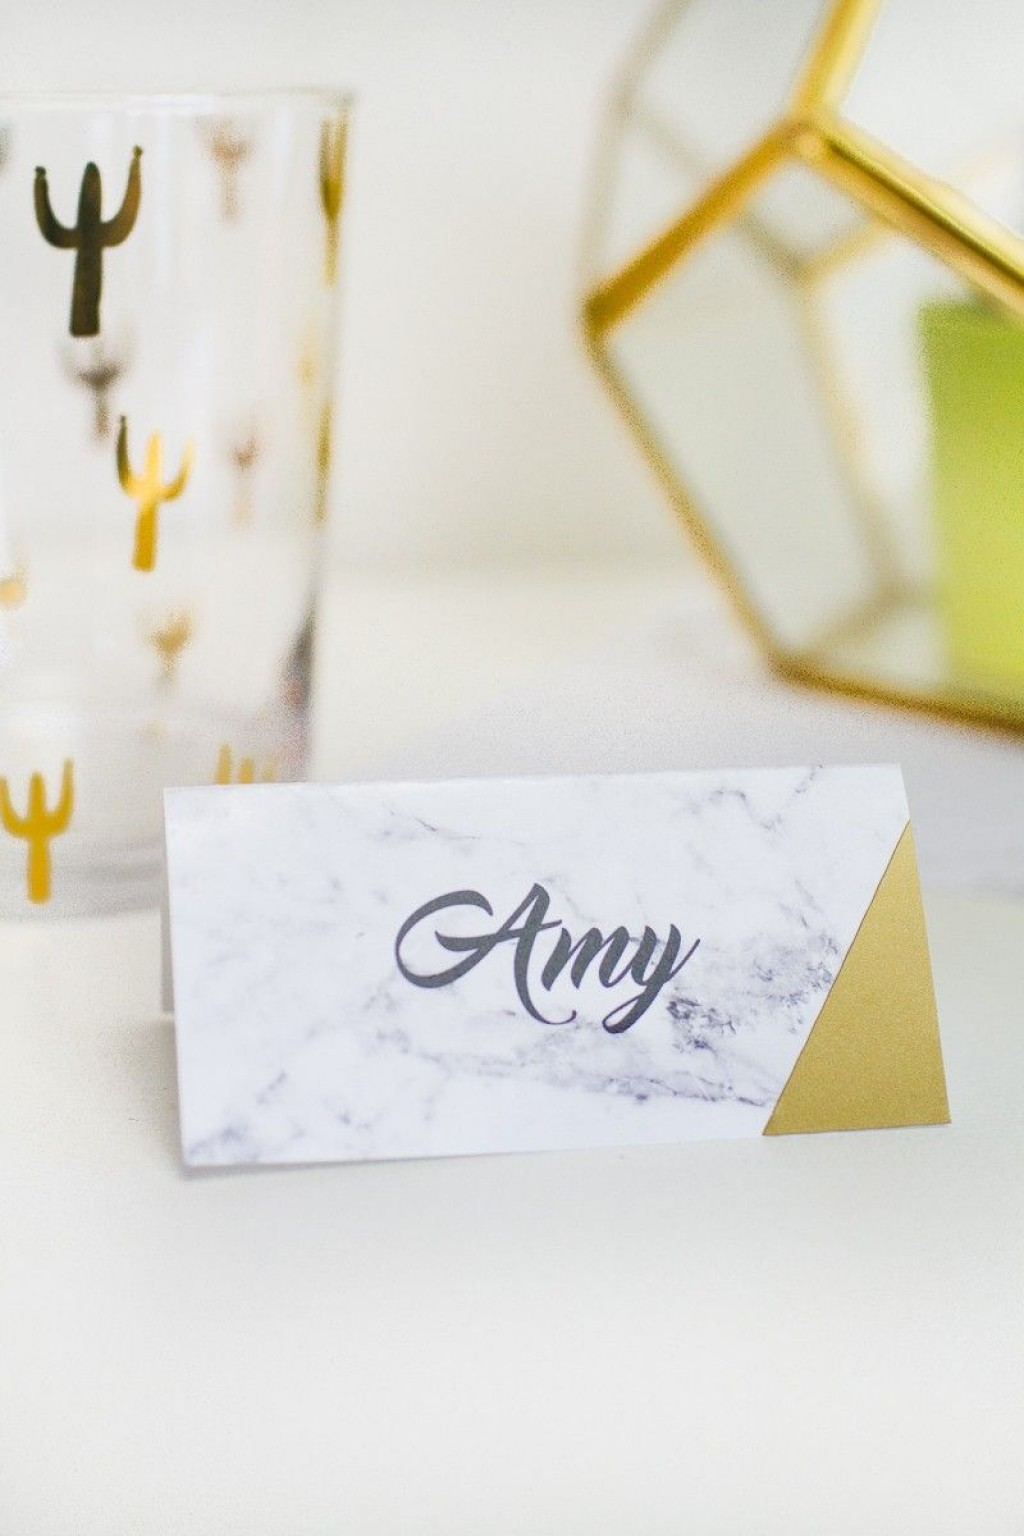 000 Wonderful Name Place Card Template Free Download Image  Psd VectorLarge